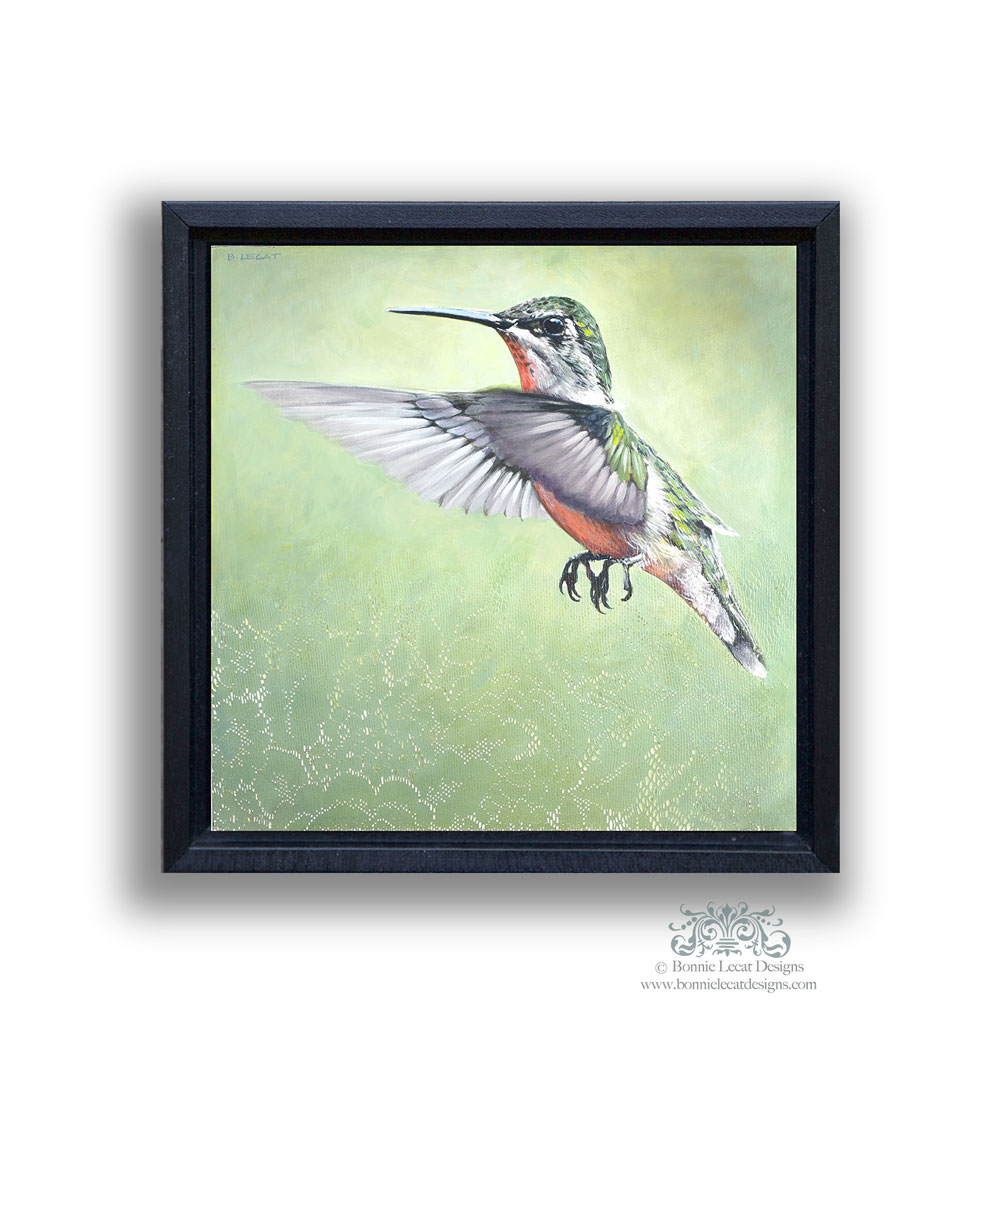 flying-hummingbird-art-print-bonnielecat-onwhite